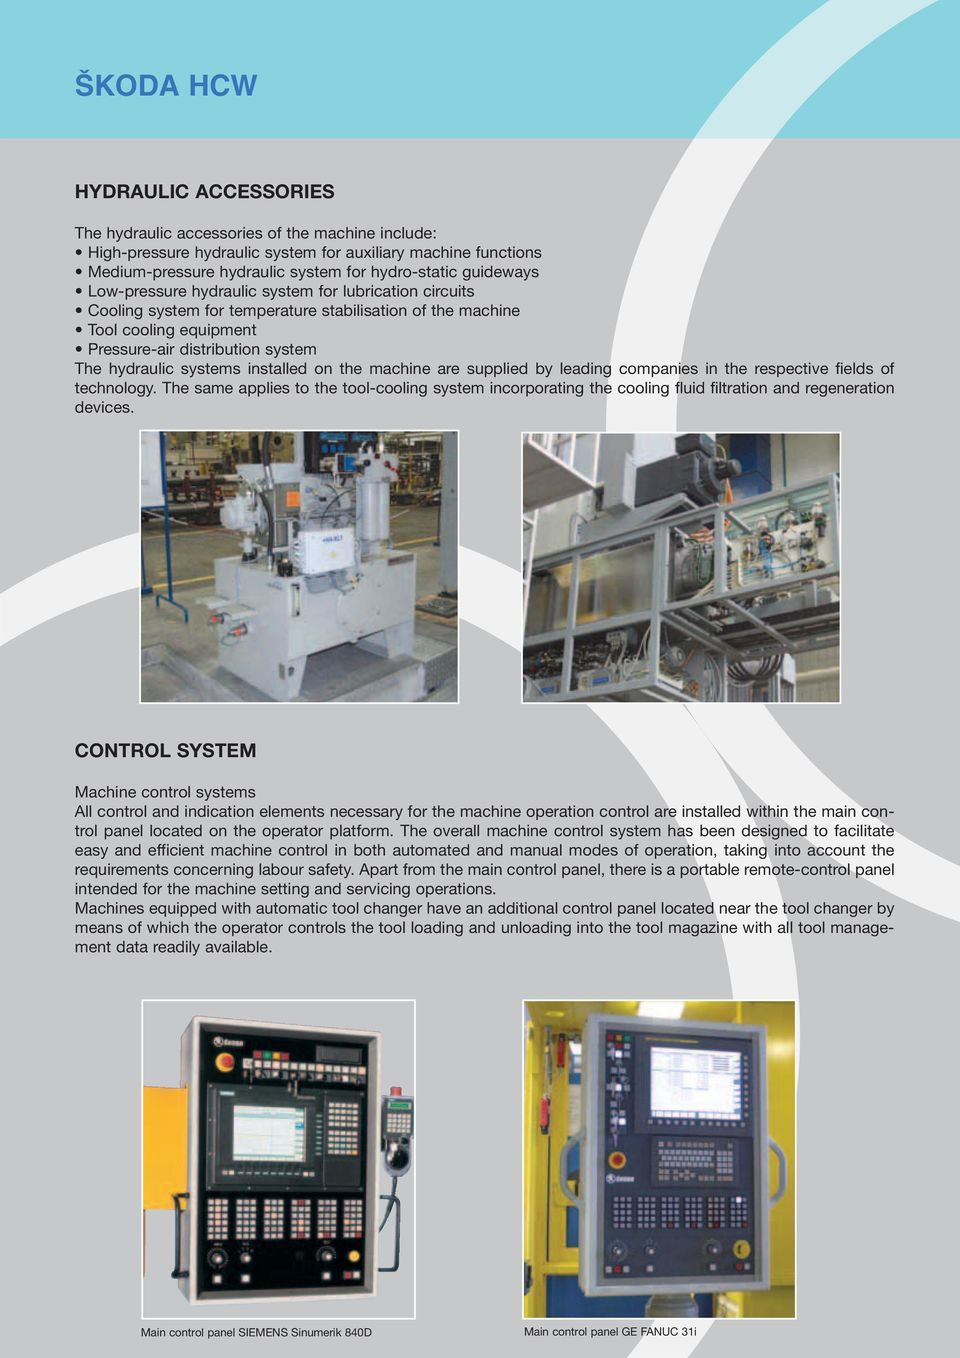 systems installed on the machine are supplied by leading companies in the respective fields of technology.